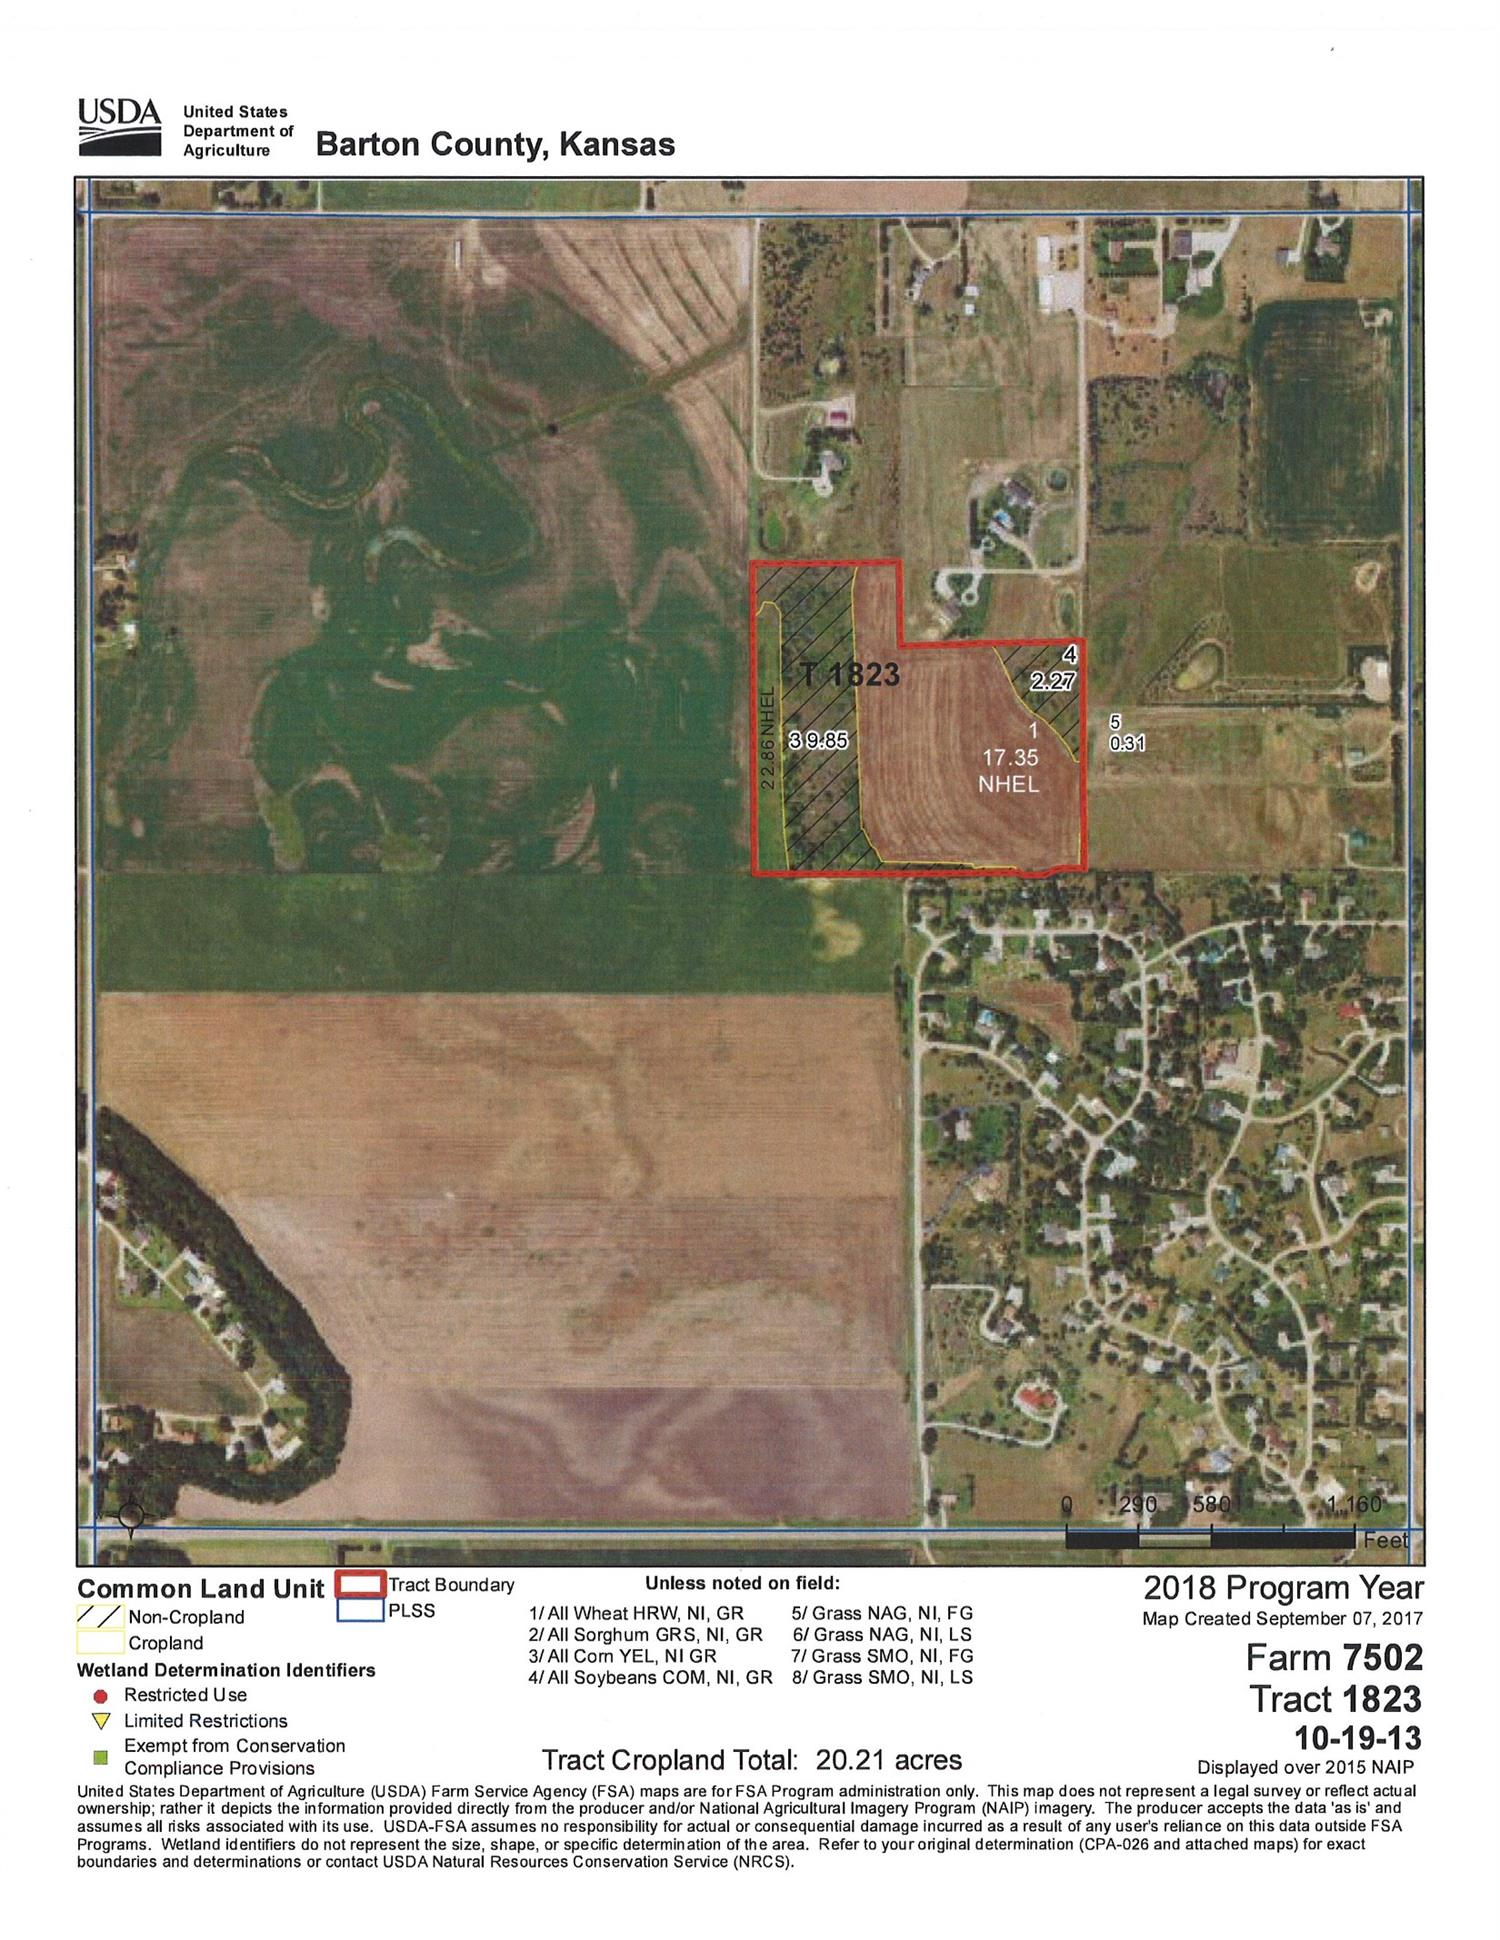 Perfect location for a new home site or hide away close to town.  A 23+/- acre tract of land just North of Bissells Point plus one lot in Bissells Point.  The tract consists of 20.21+/- acres of cultivated land.  Balance in roads, trees & grass.  350 Point Drive, Great Bend - Lot Dimensions 150' x 219.4' with water hookup.